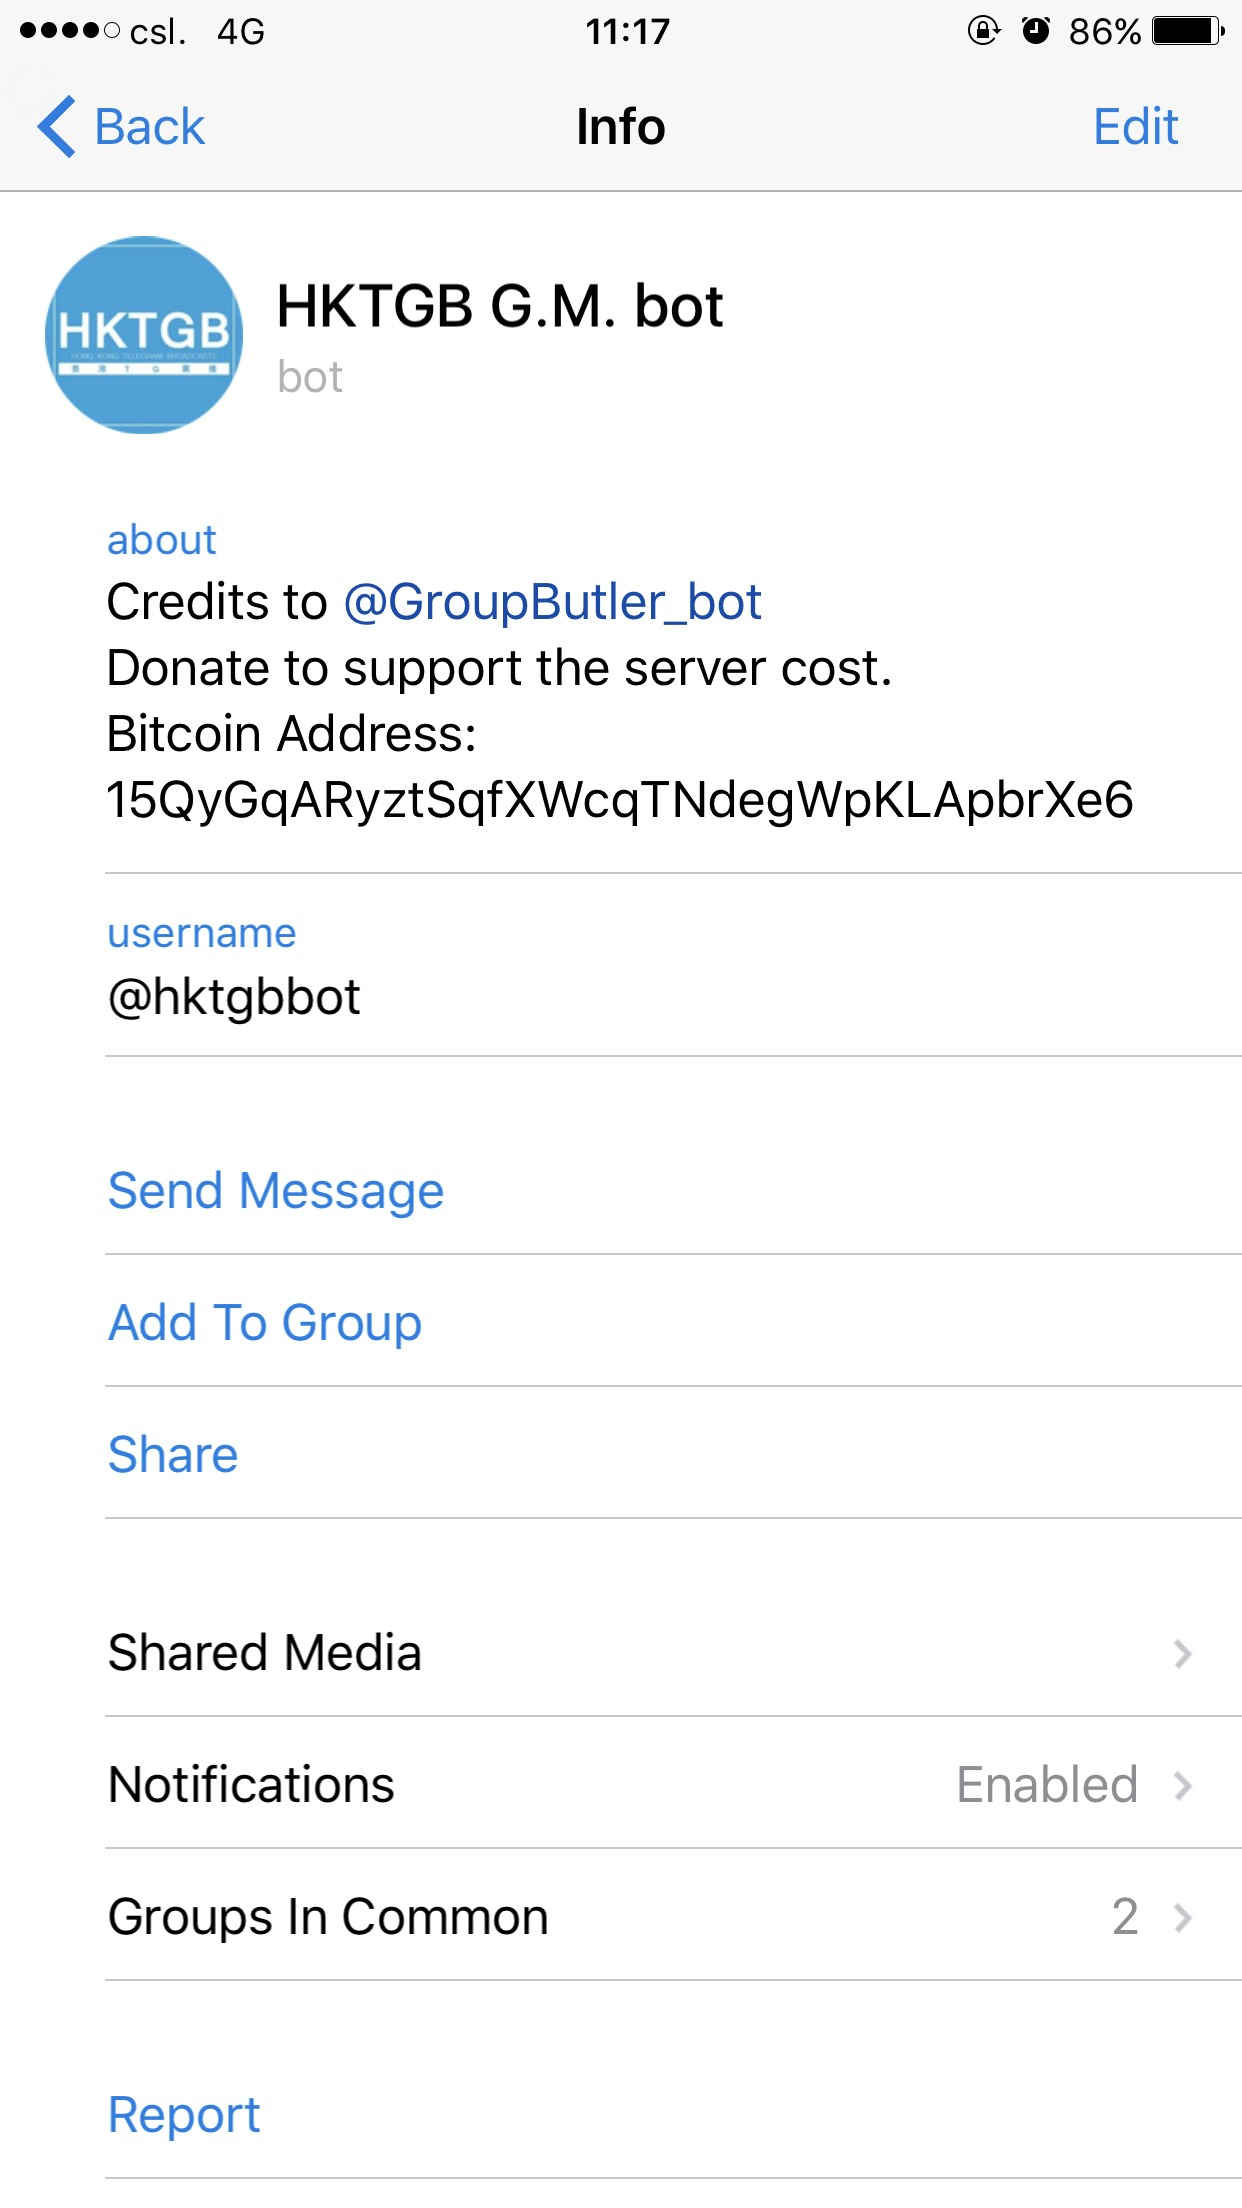 how to add someone in a group in telegram